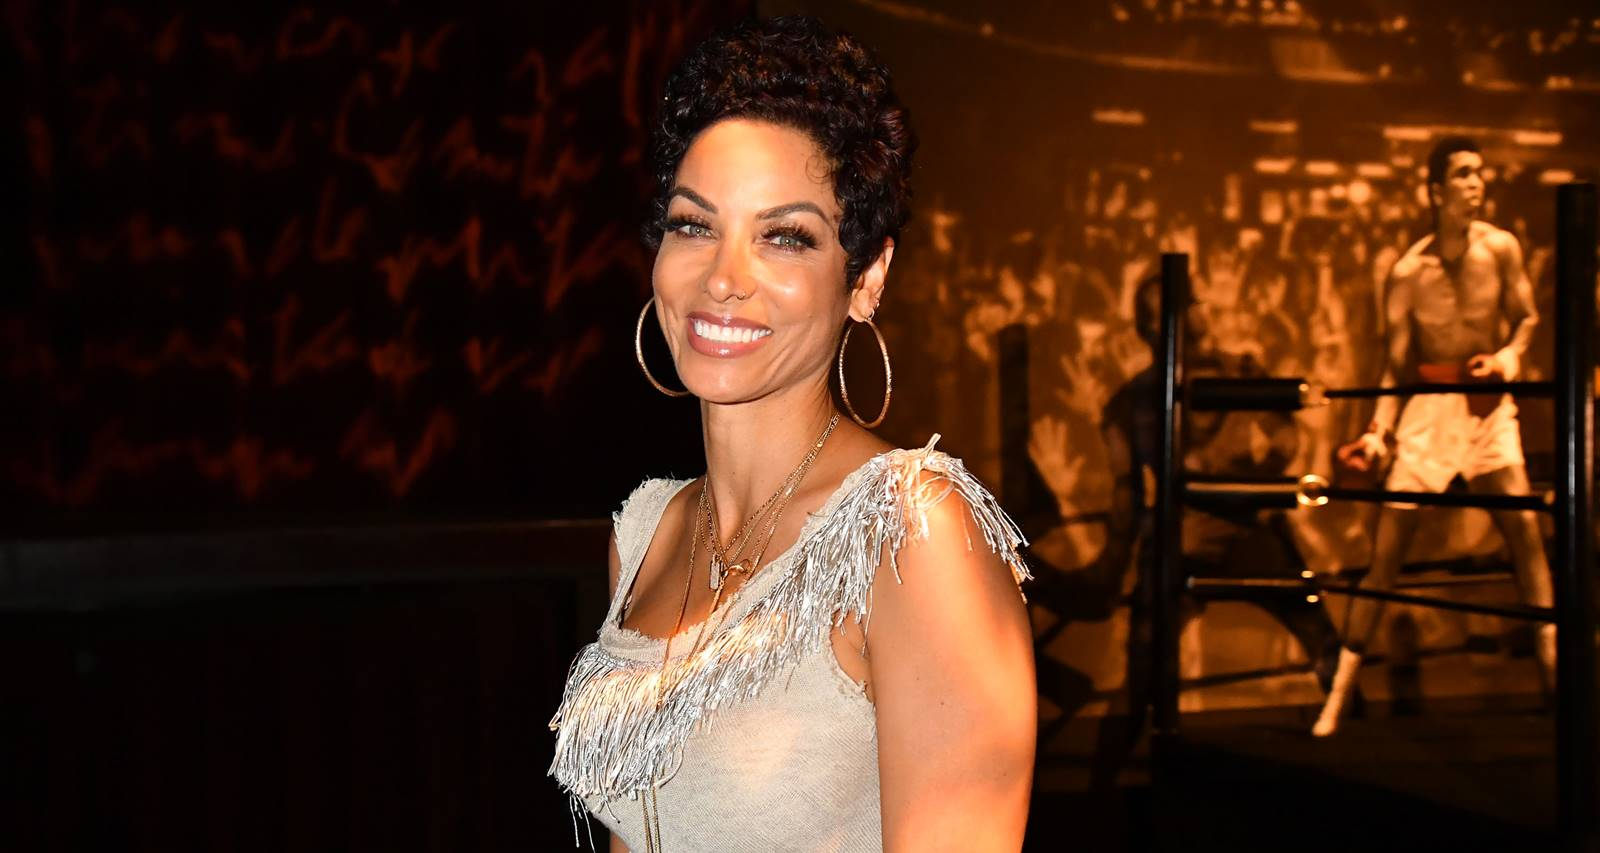 Nicole Mitchell Murphy Wiki, Age, Kids, Parents, Model, Career and Facts To Know About Eddie Murphy's Ex-Wife